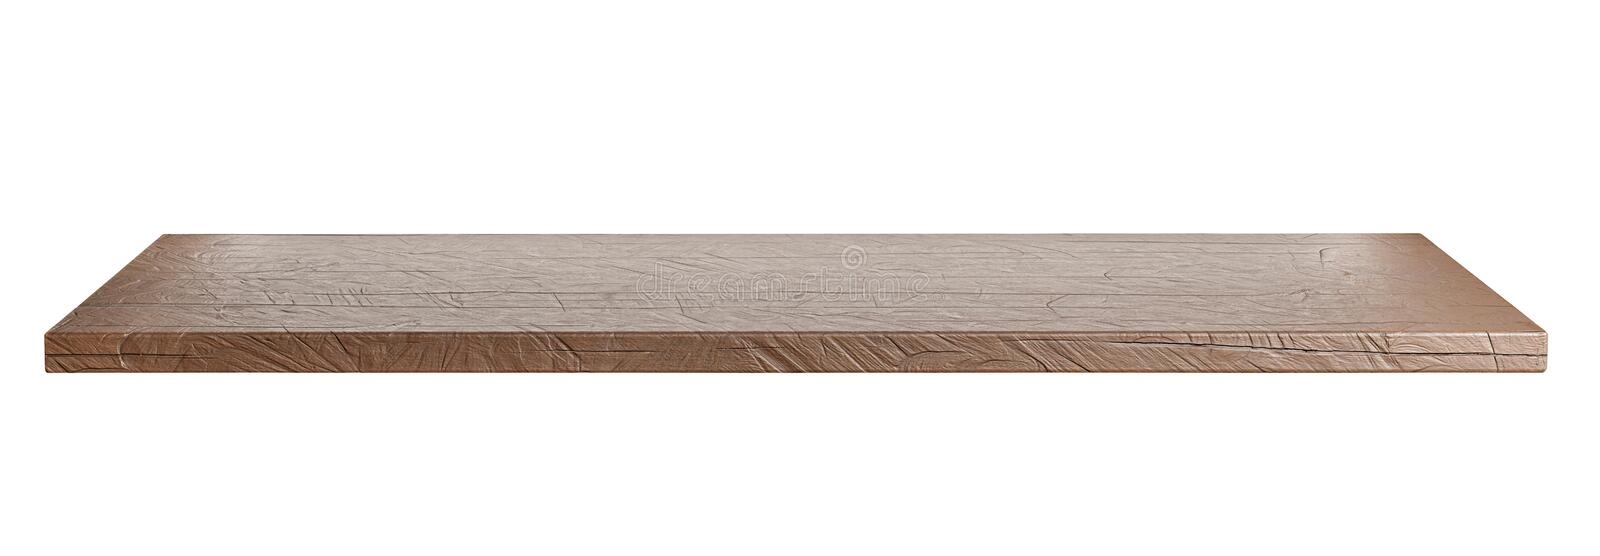 Rustic, empty tabletop or shelf isolated on white. Clipping path included. Suitable for product display. 3D render stock illustration